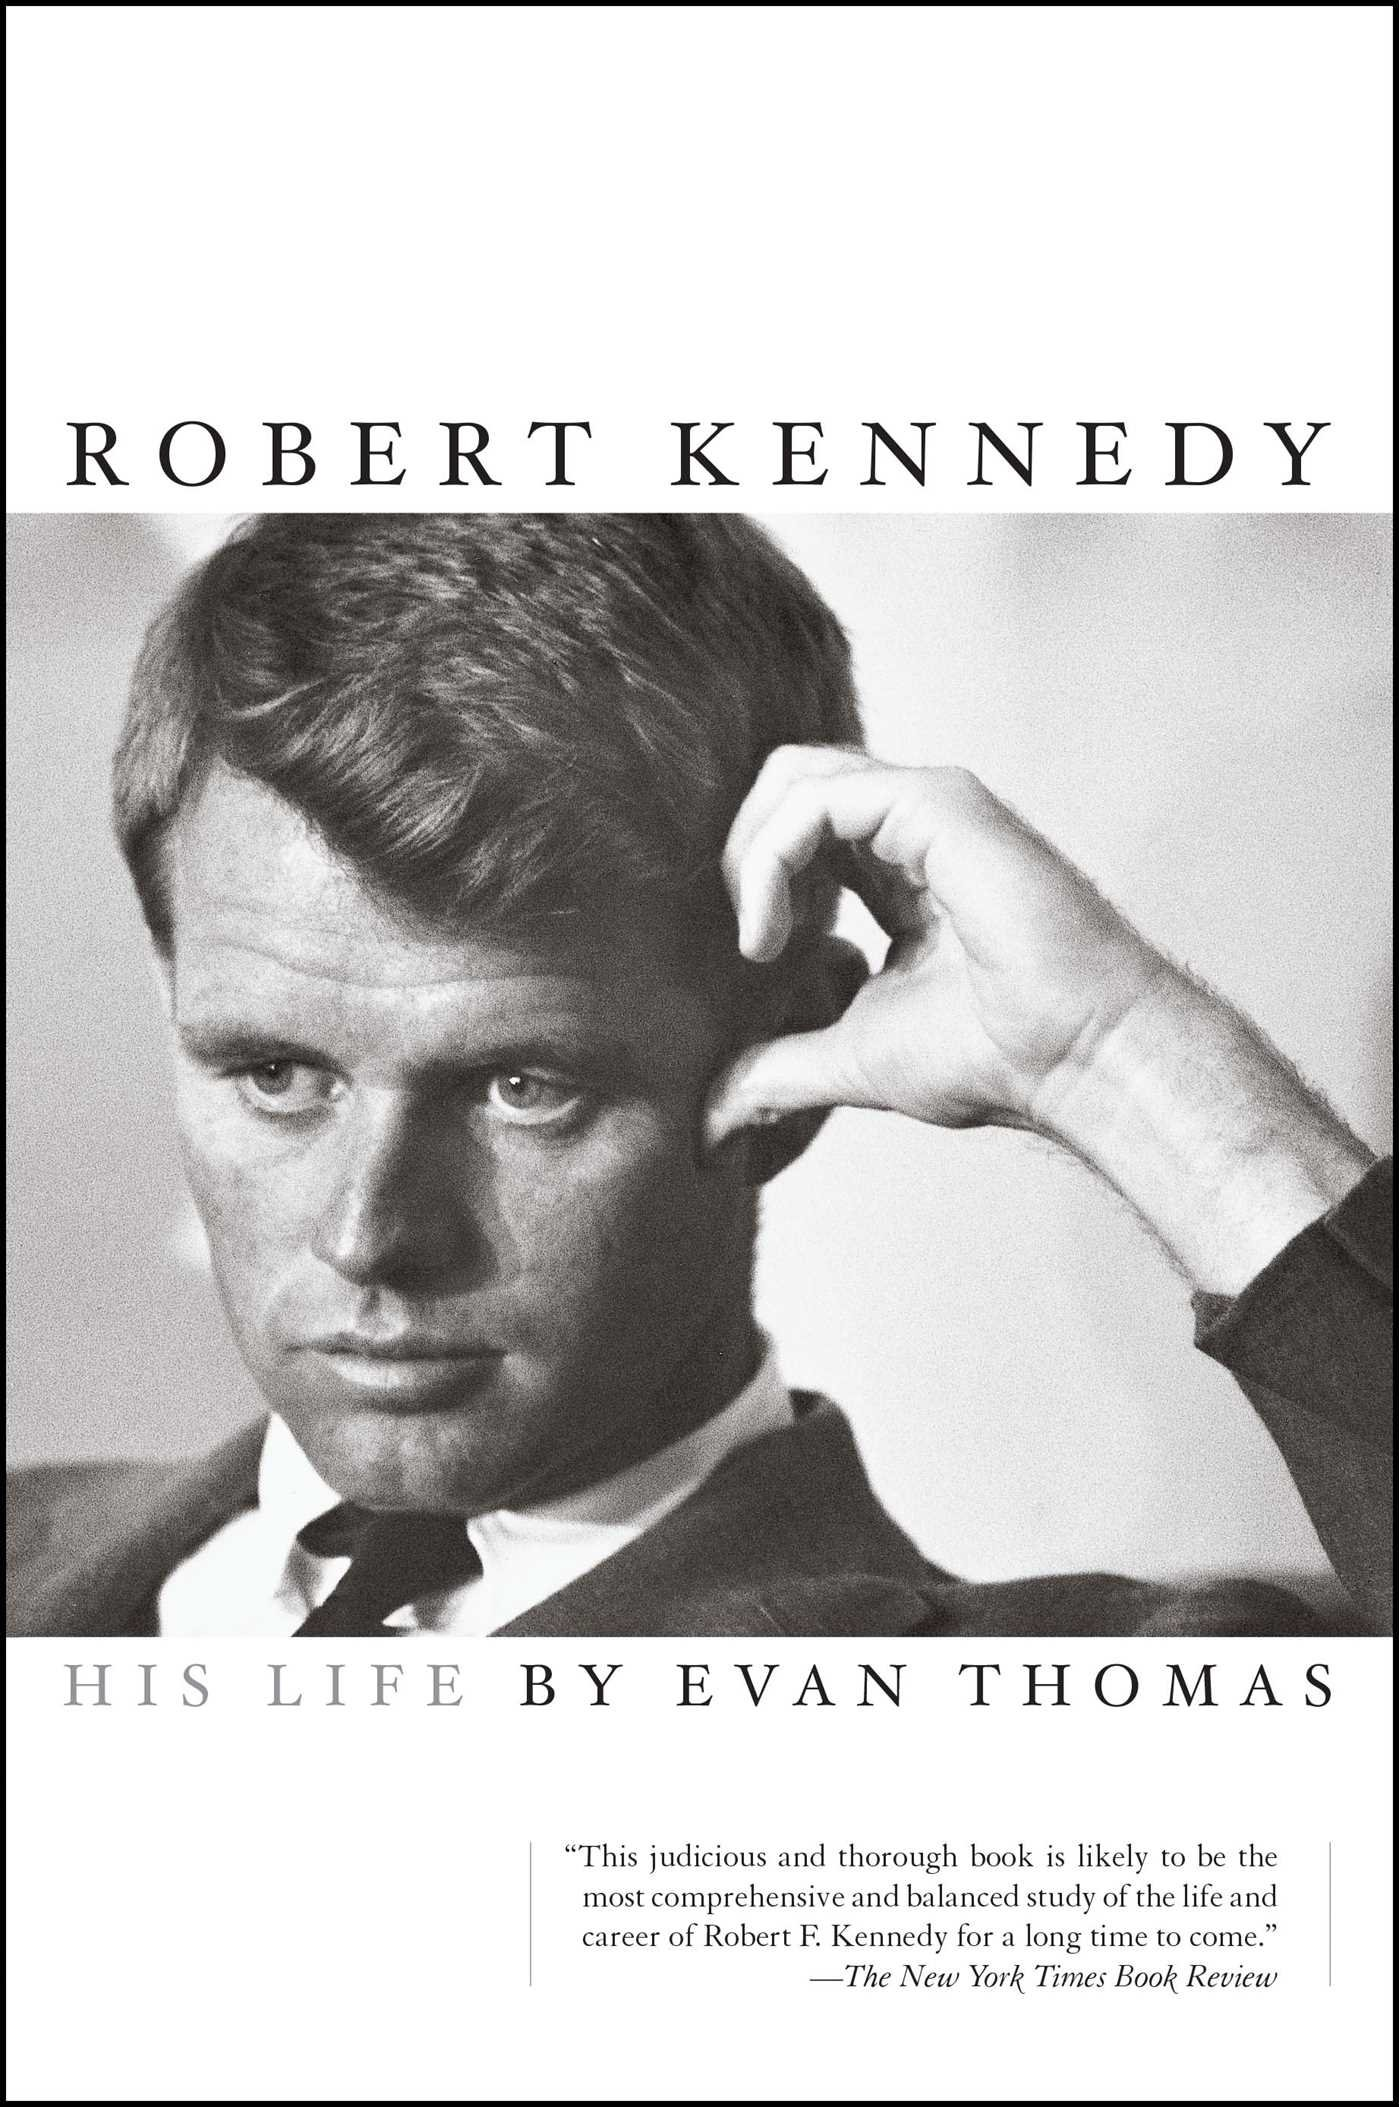 3 Robert Kennedy Magazines 1968 Available In Various Designs And Specifications For Your Selection Exonumia Other Exonumia